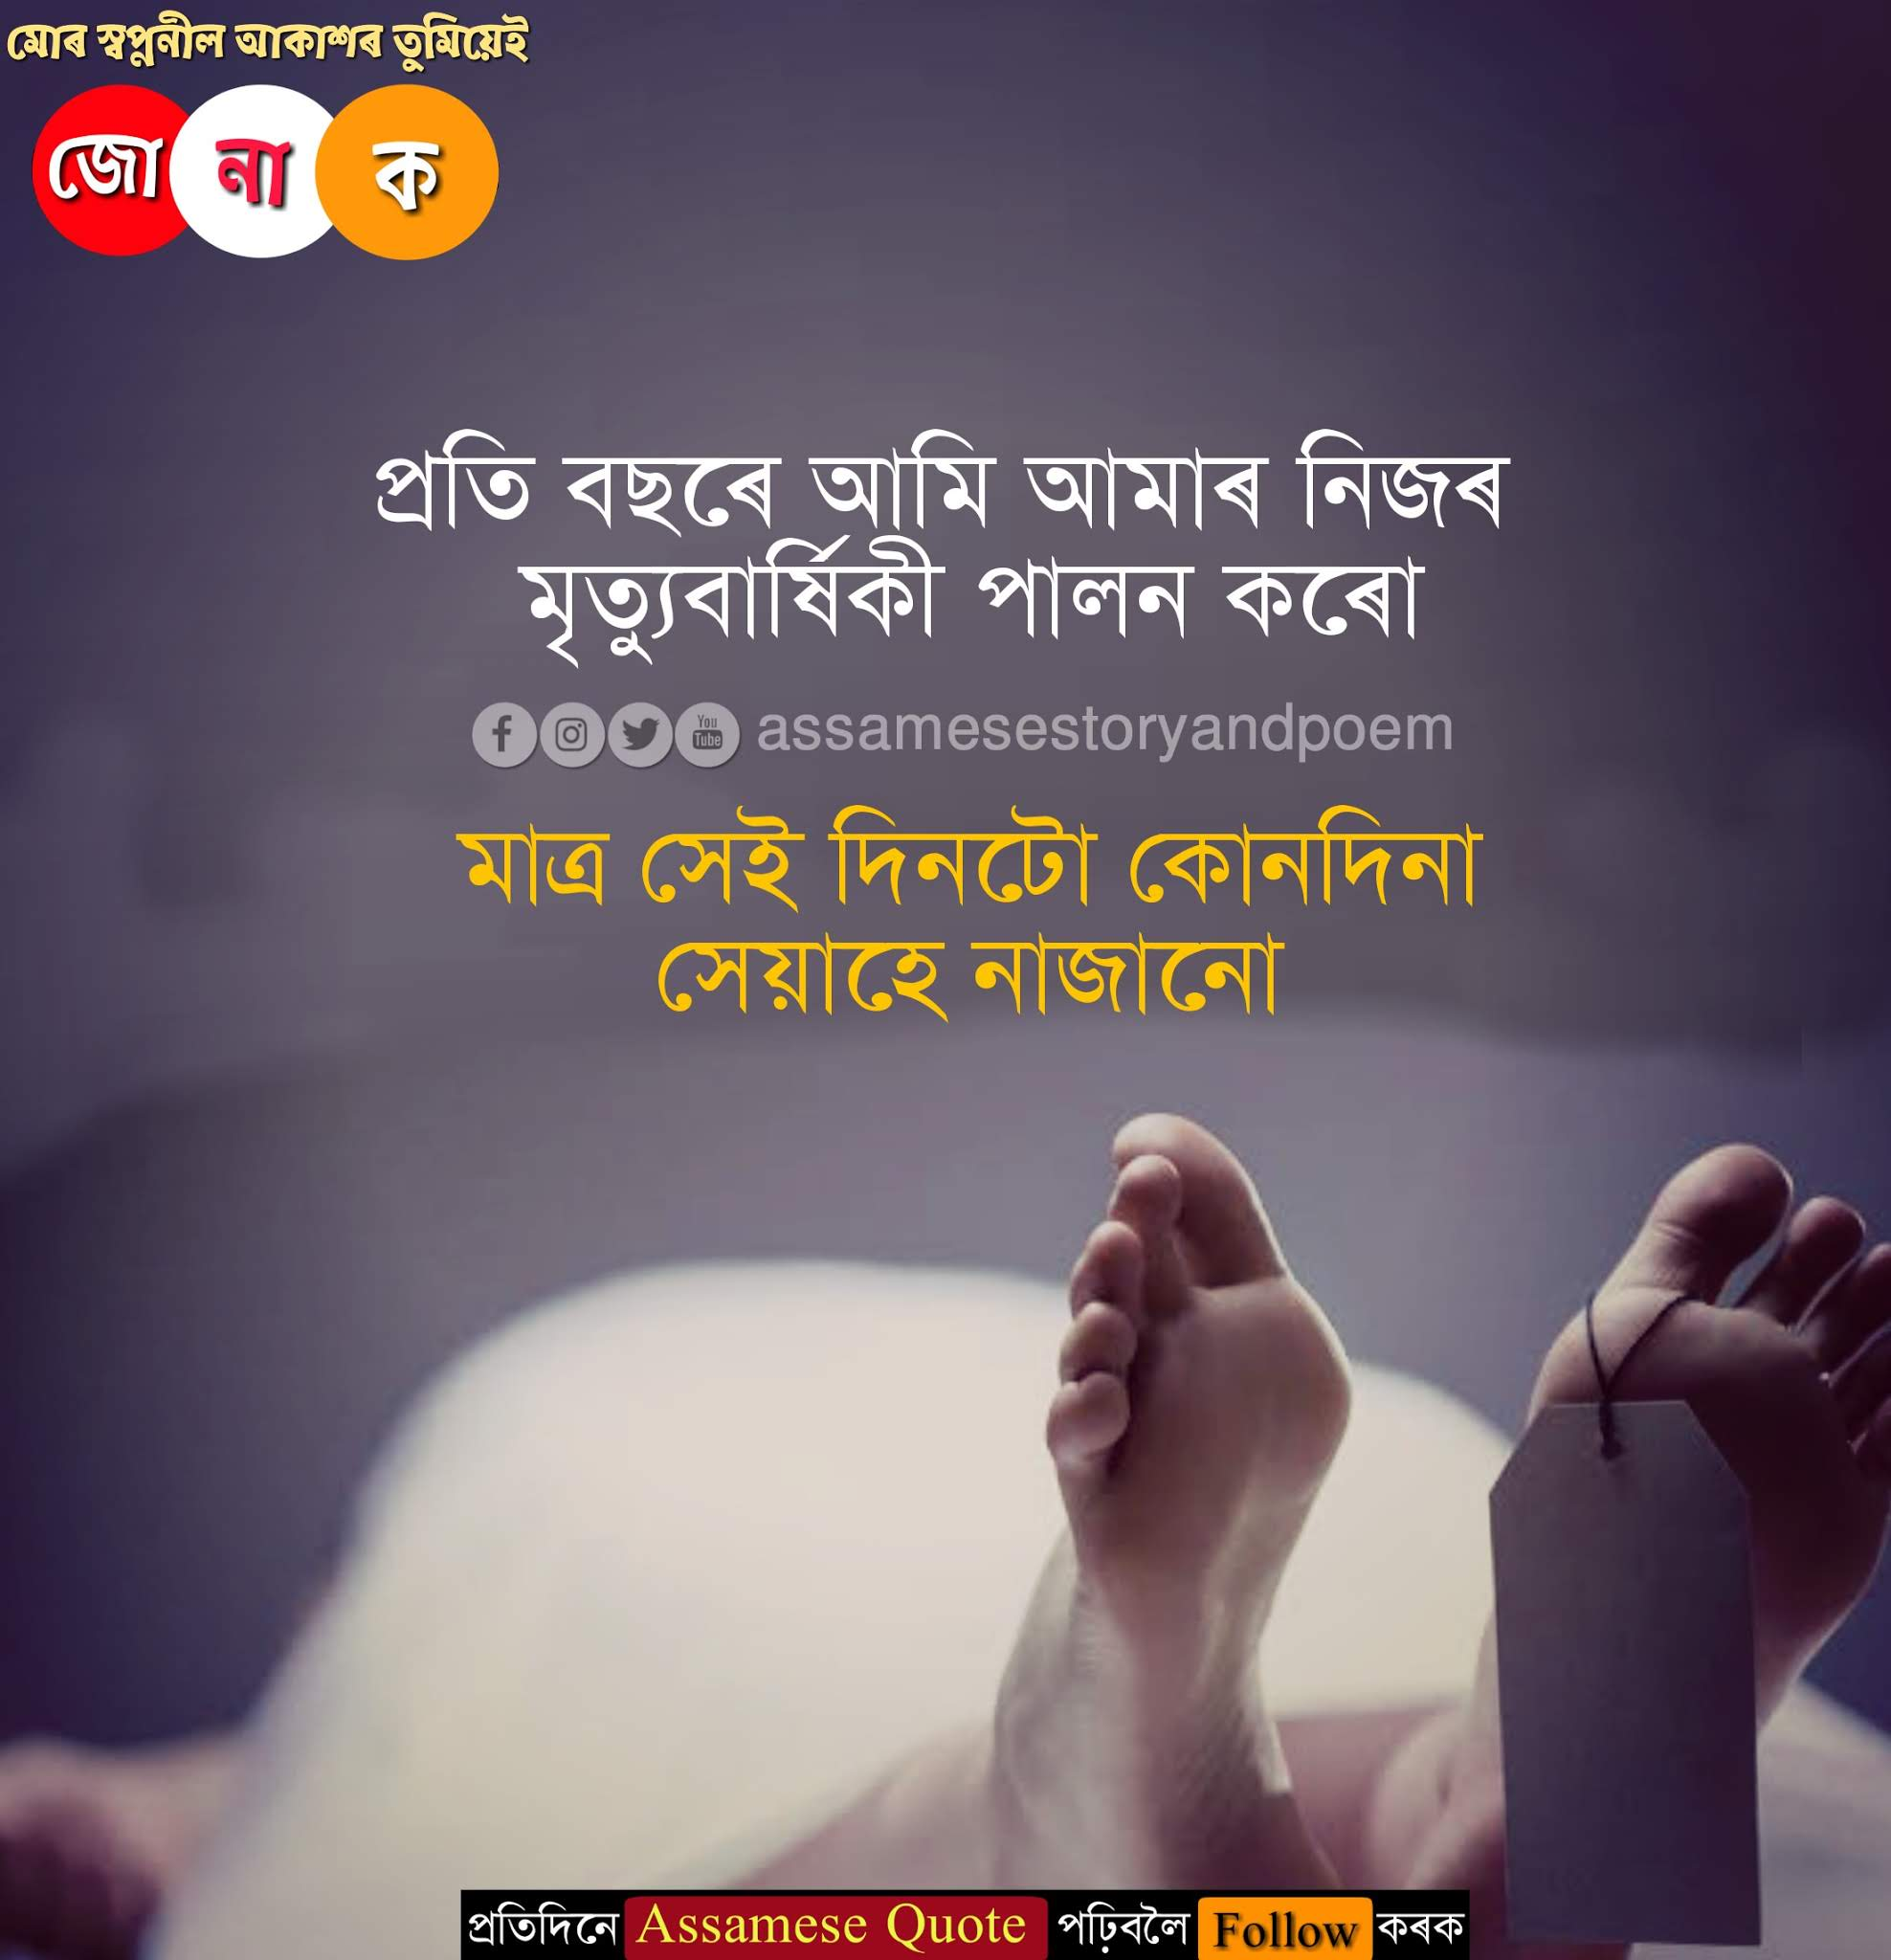 Very heart touching sad quotes in assamese